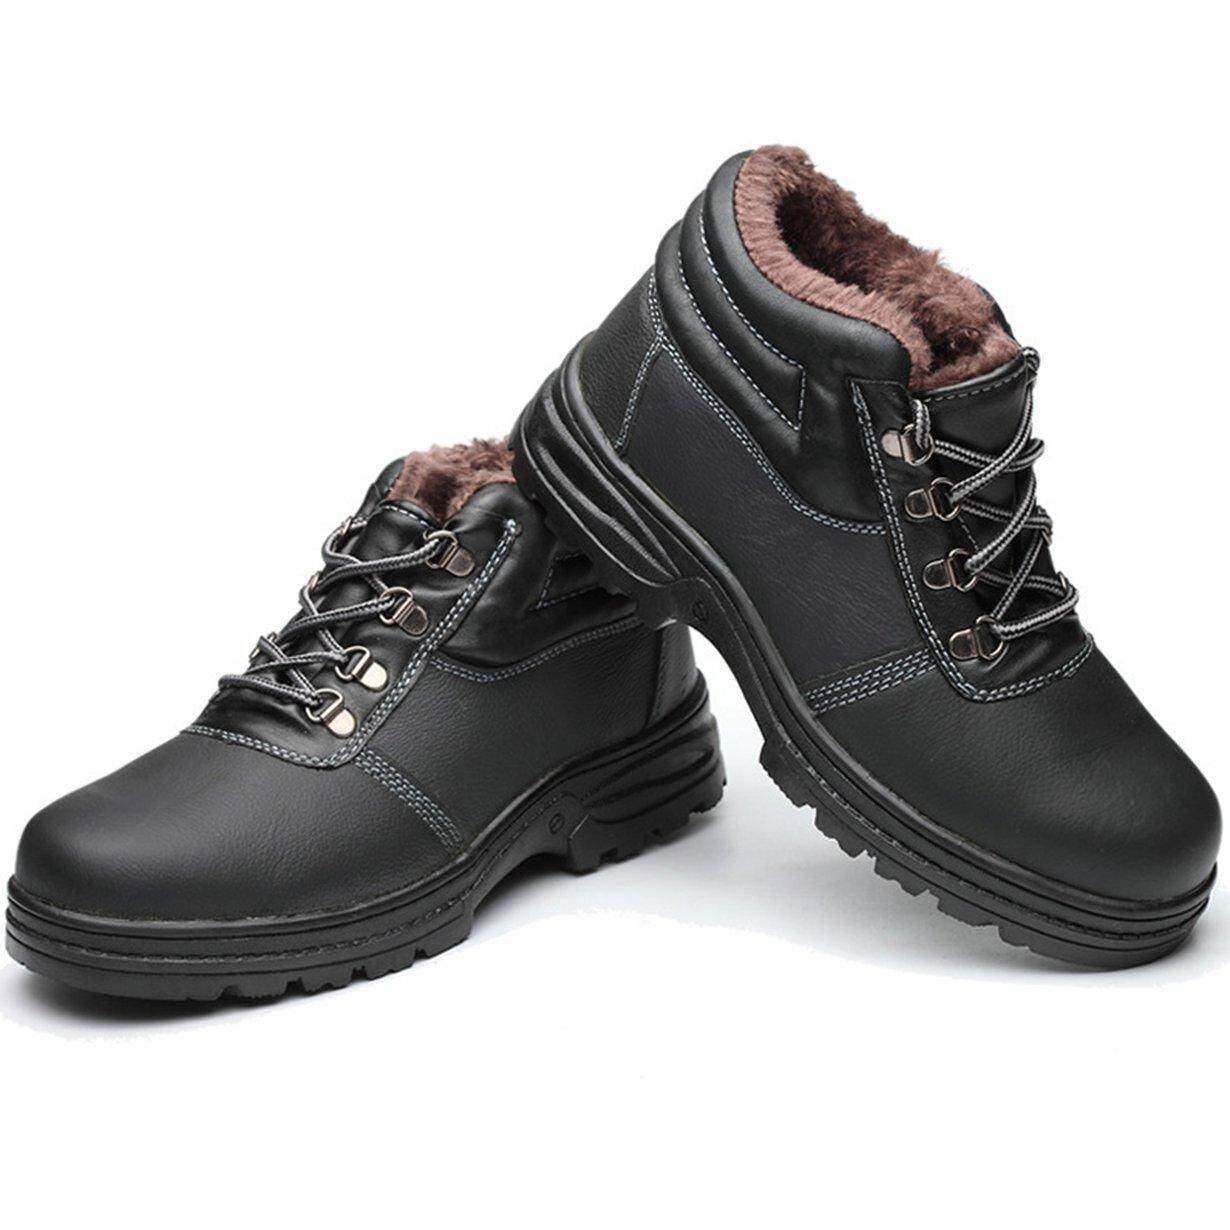 Best Sales Men Safety Shoes Construction Shoes Steel Toe Work Boots Leather Shoes